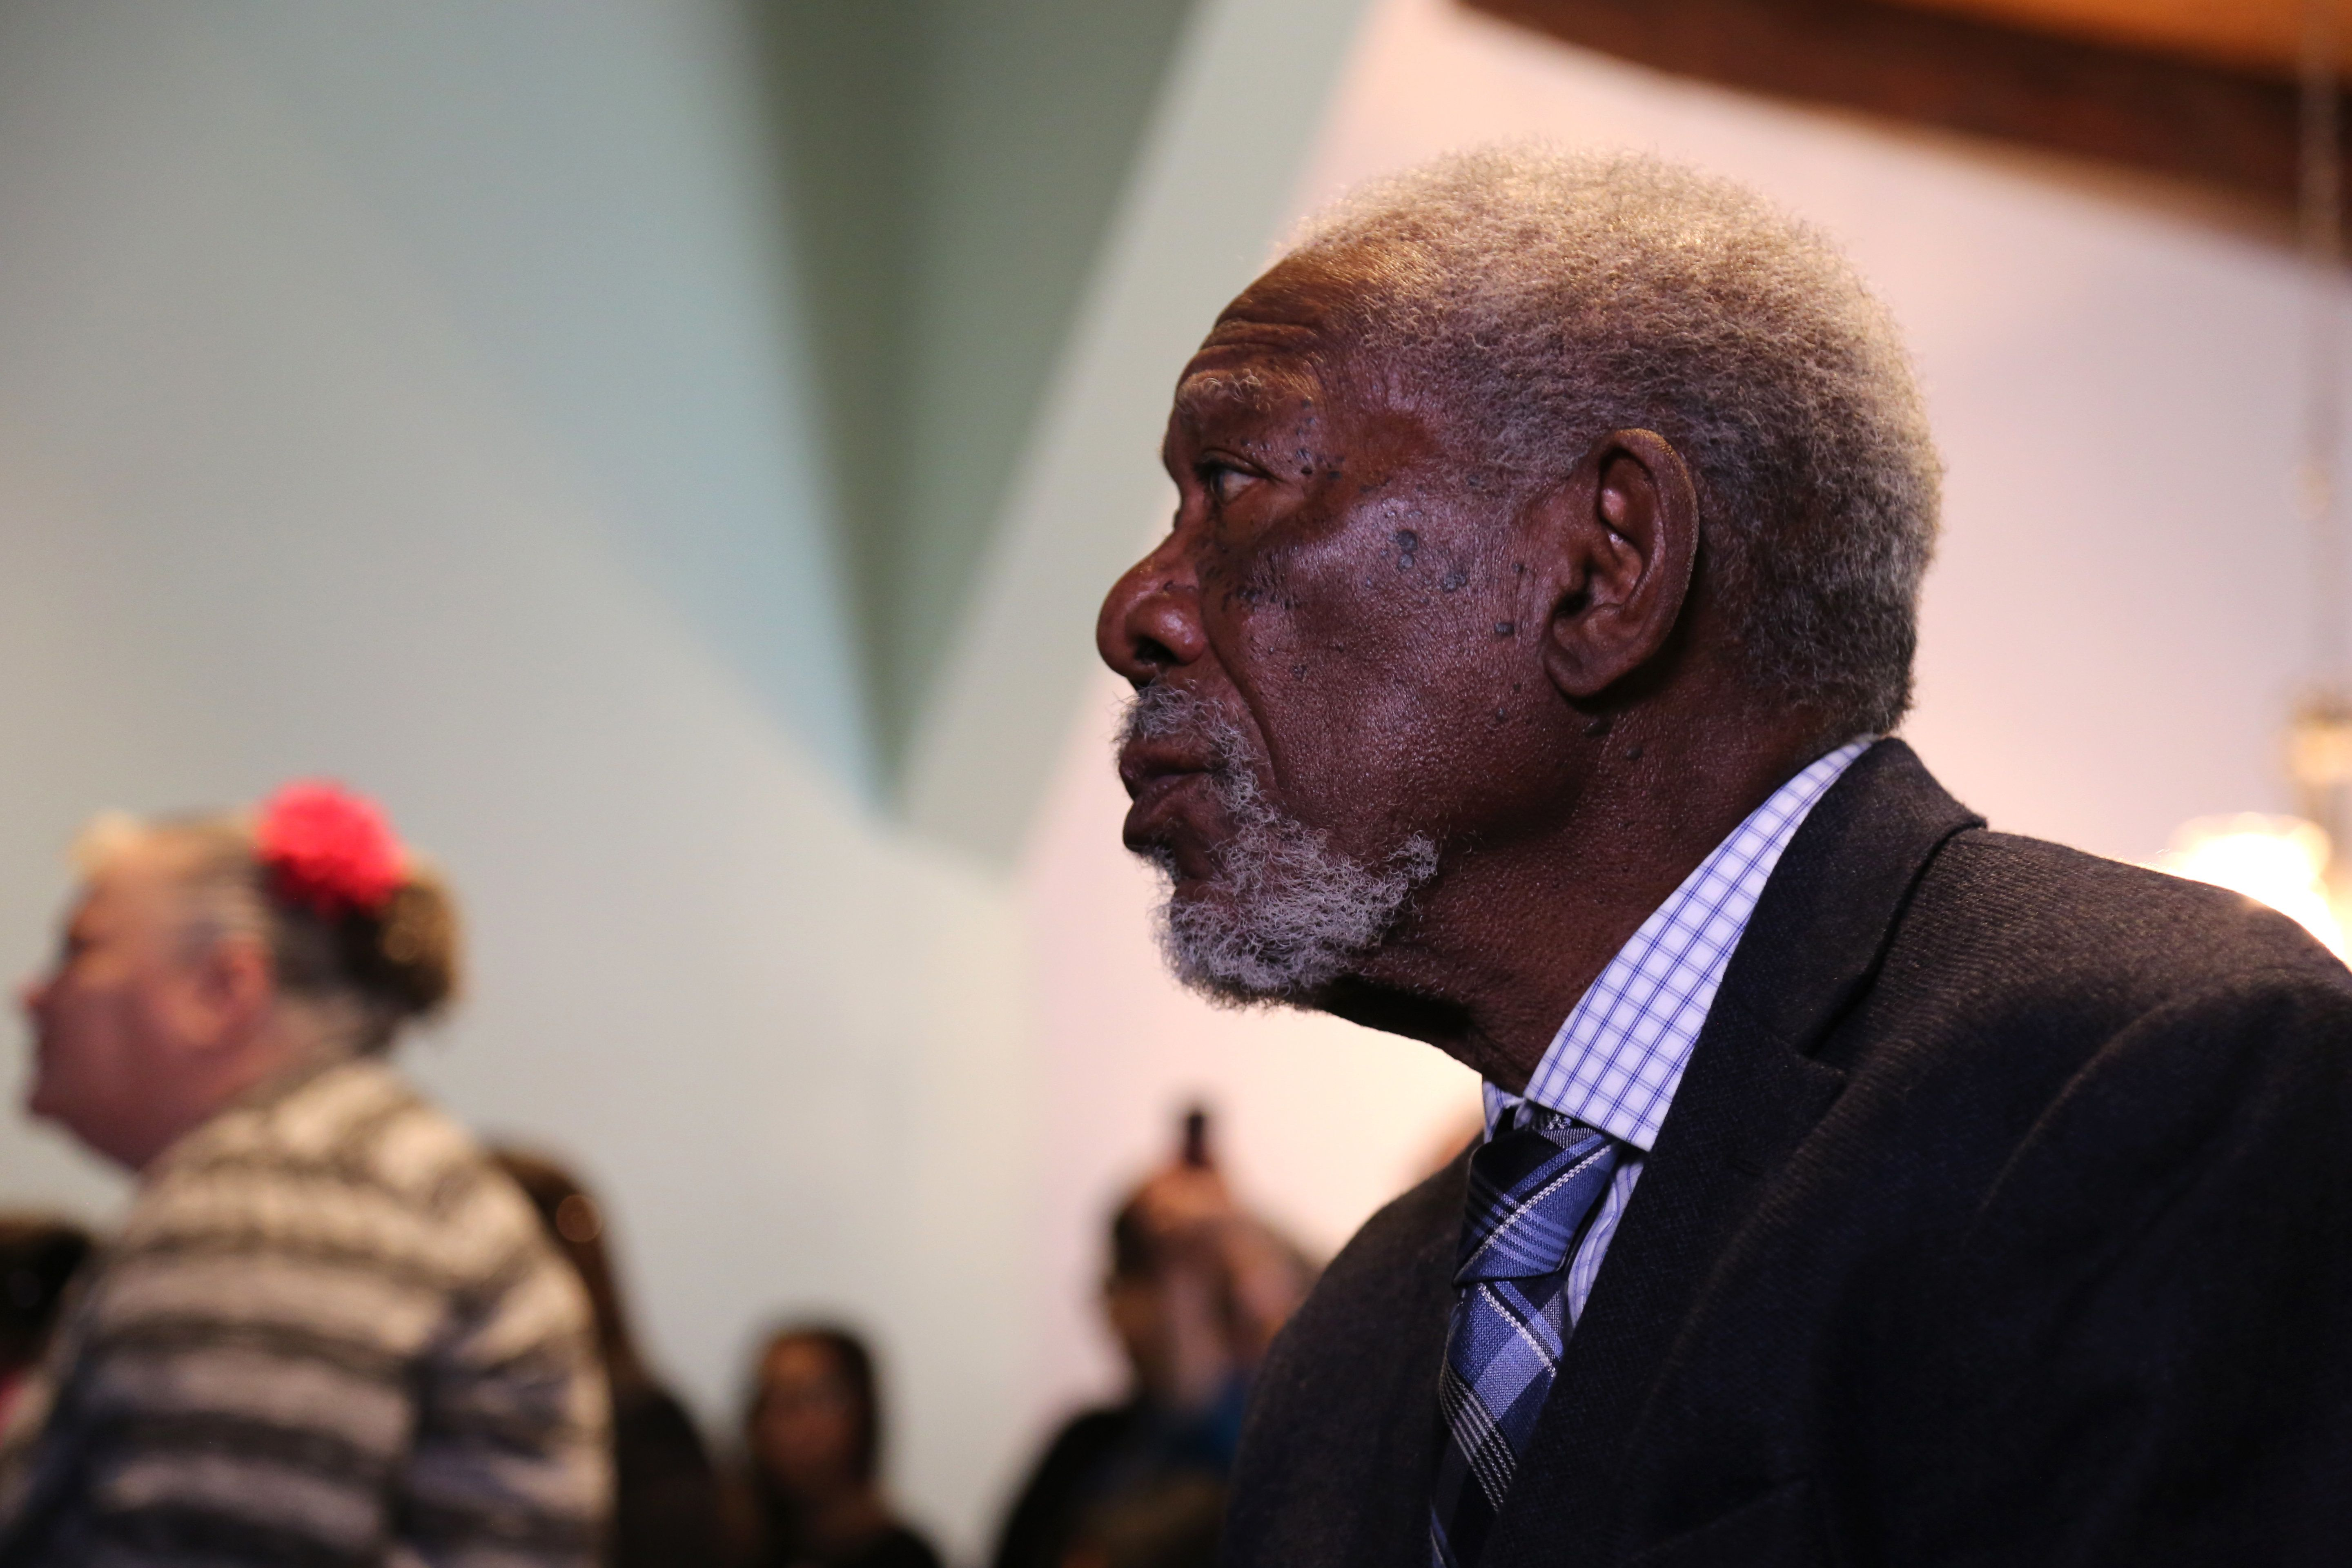 ALBUQUERQUE, NM - Morgan Freeman sits and watches the church service at the New Life United Pentecostal Church. (Photo Credit: National Geographic/Reza Riazi)